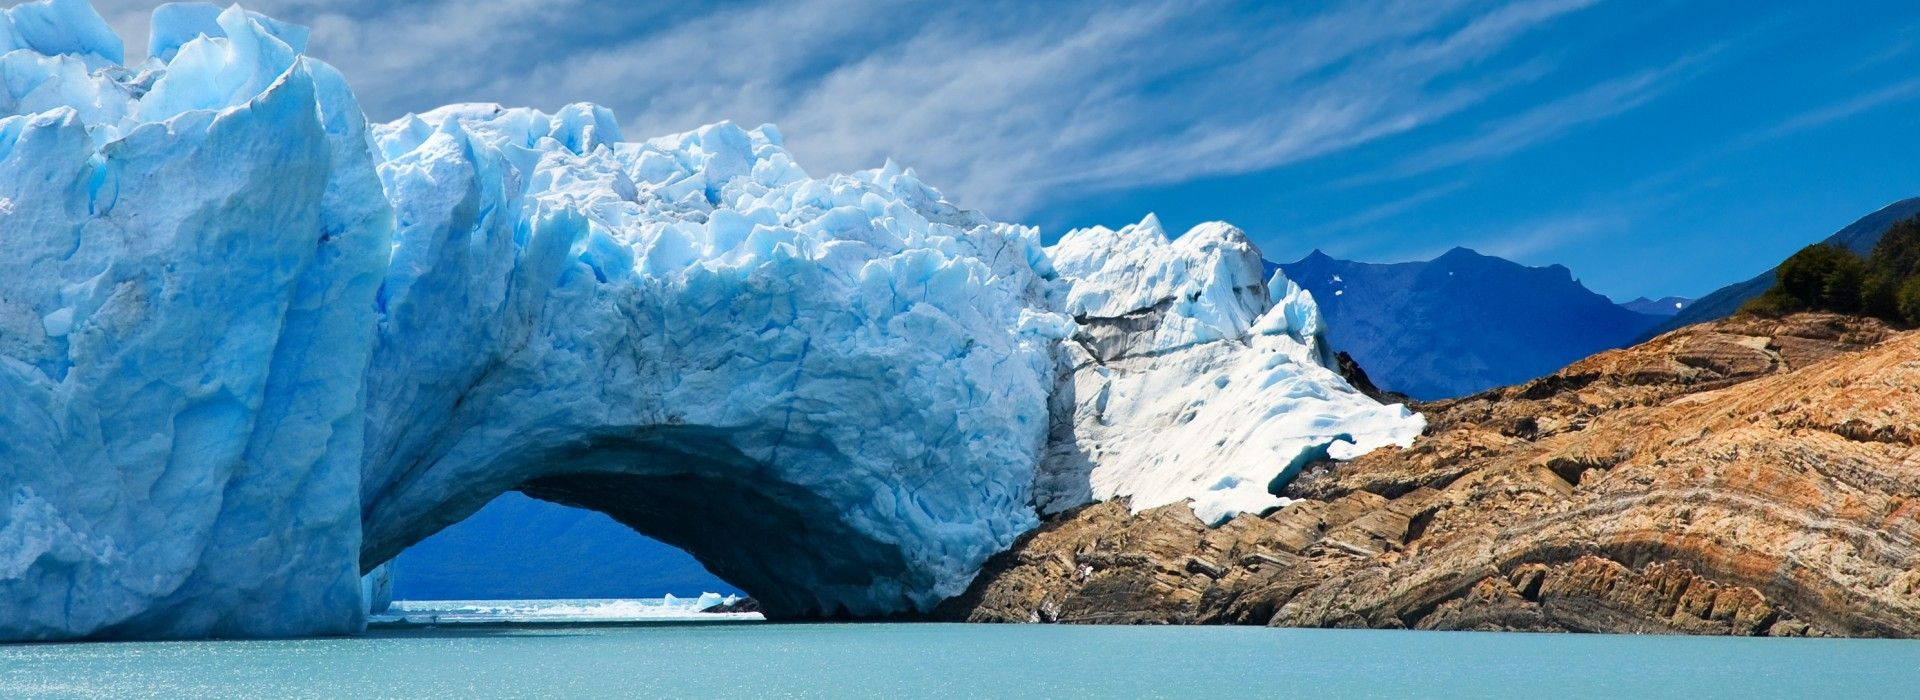 Patagonia in Argentina: Tour Highlights & Travel Tips